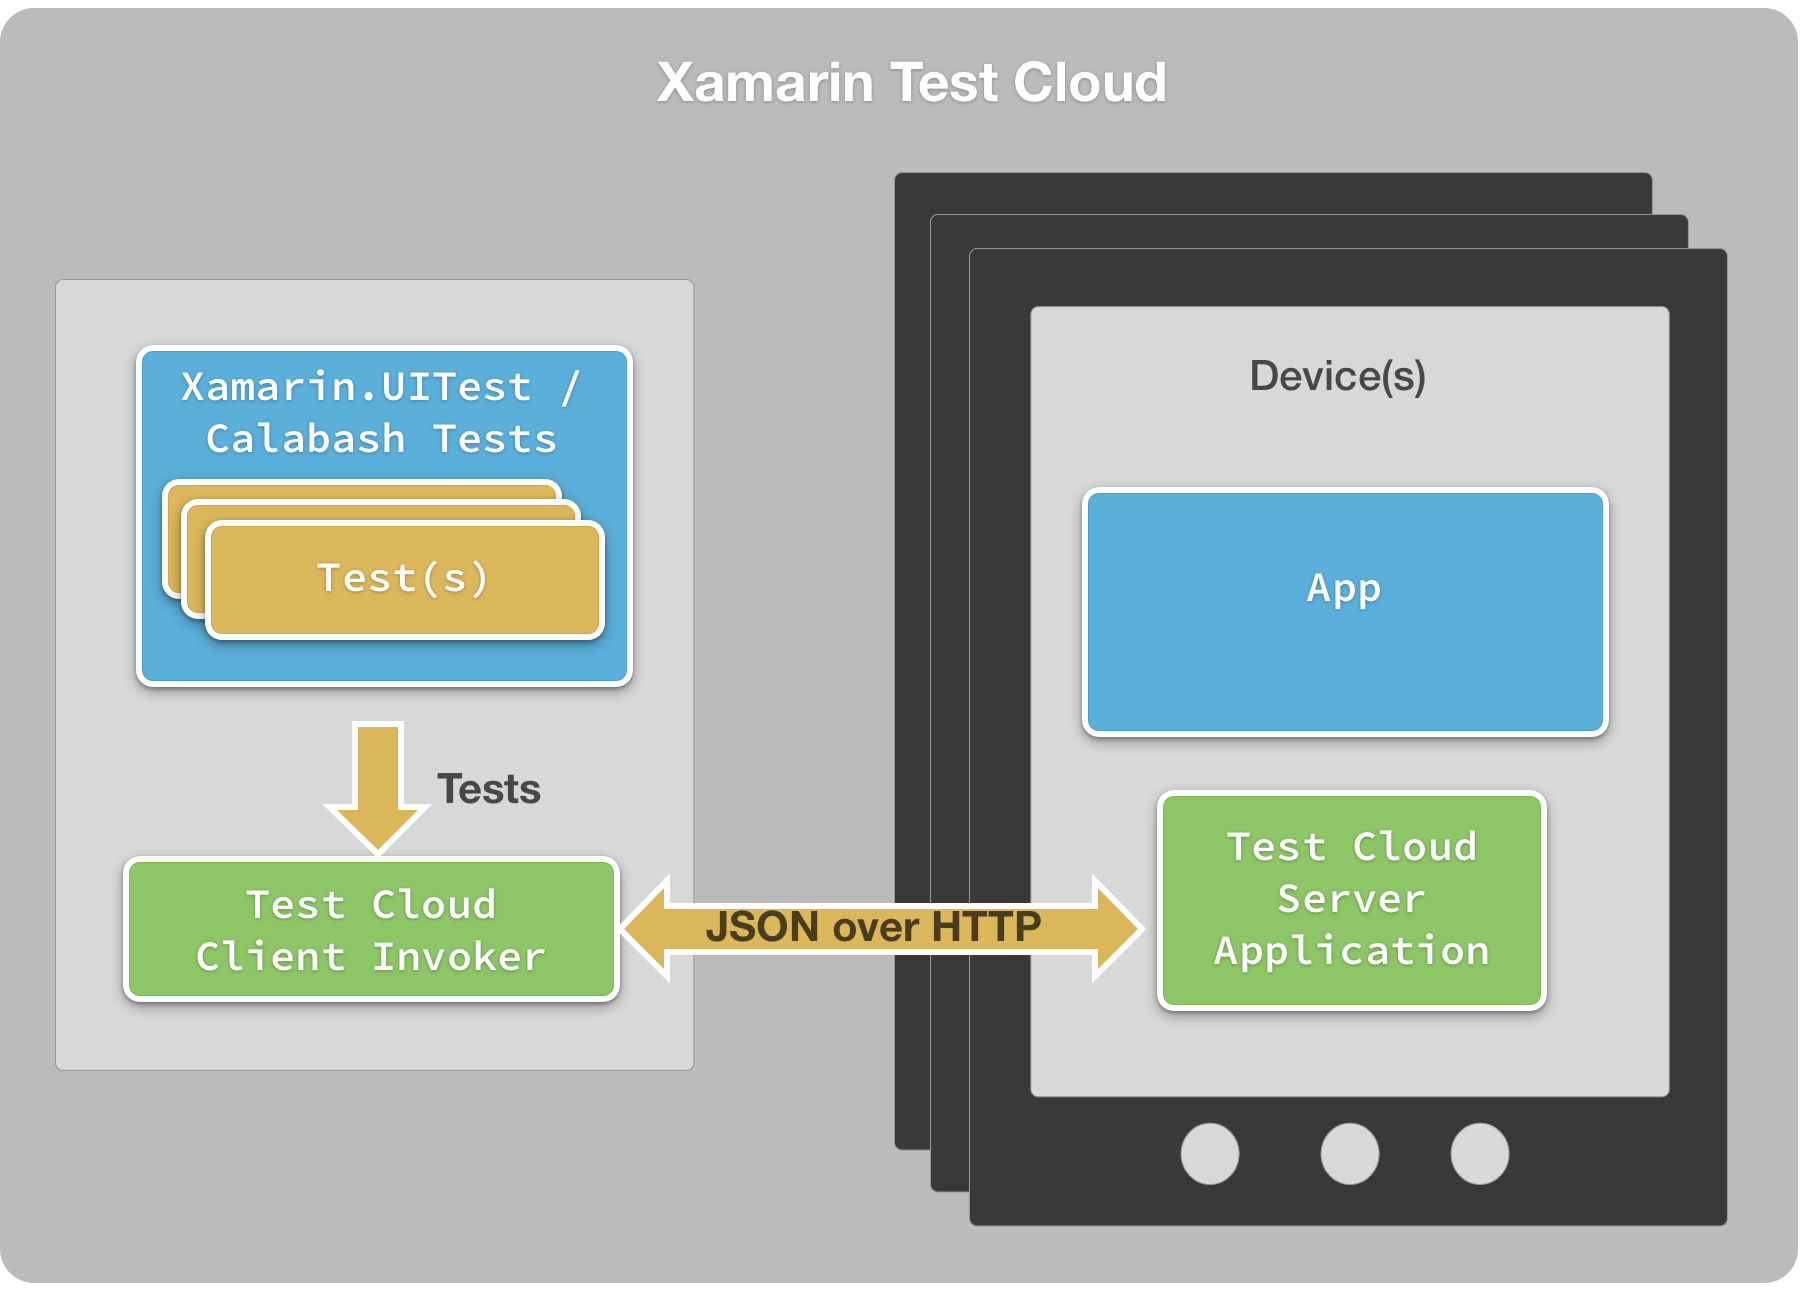 xamarin test cloud xamarin xlsoft. Black Bedroom Furniture Sets. Home Design Ideas